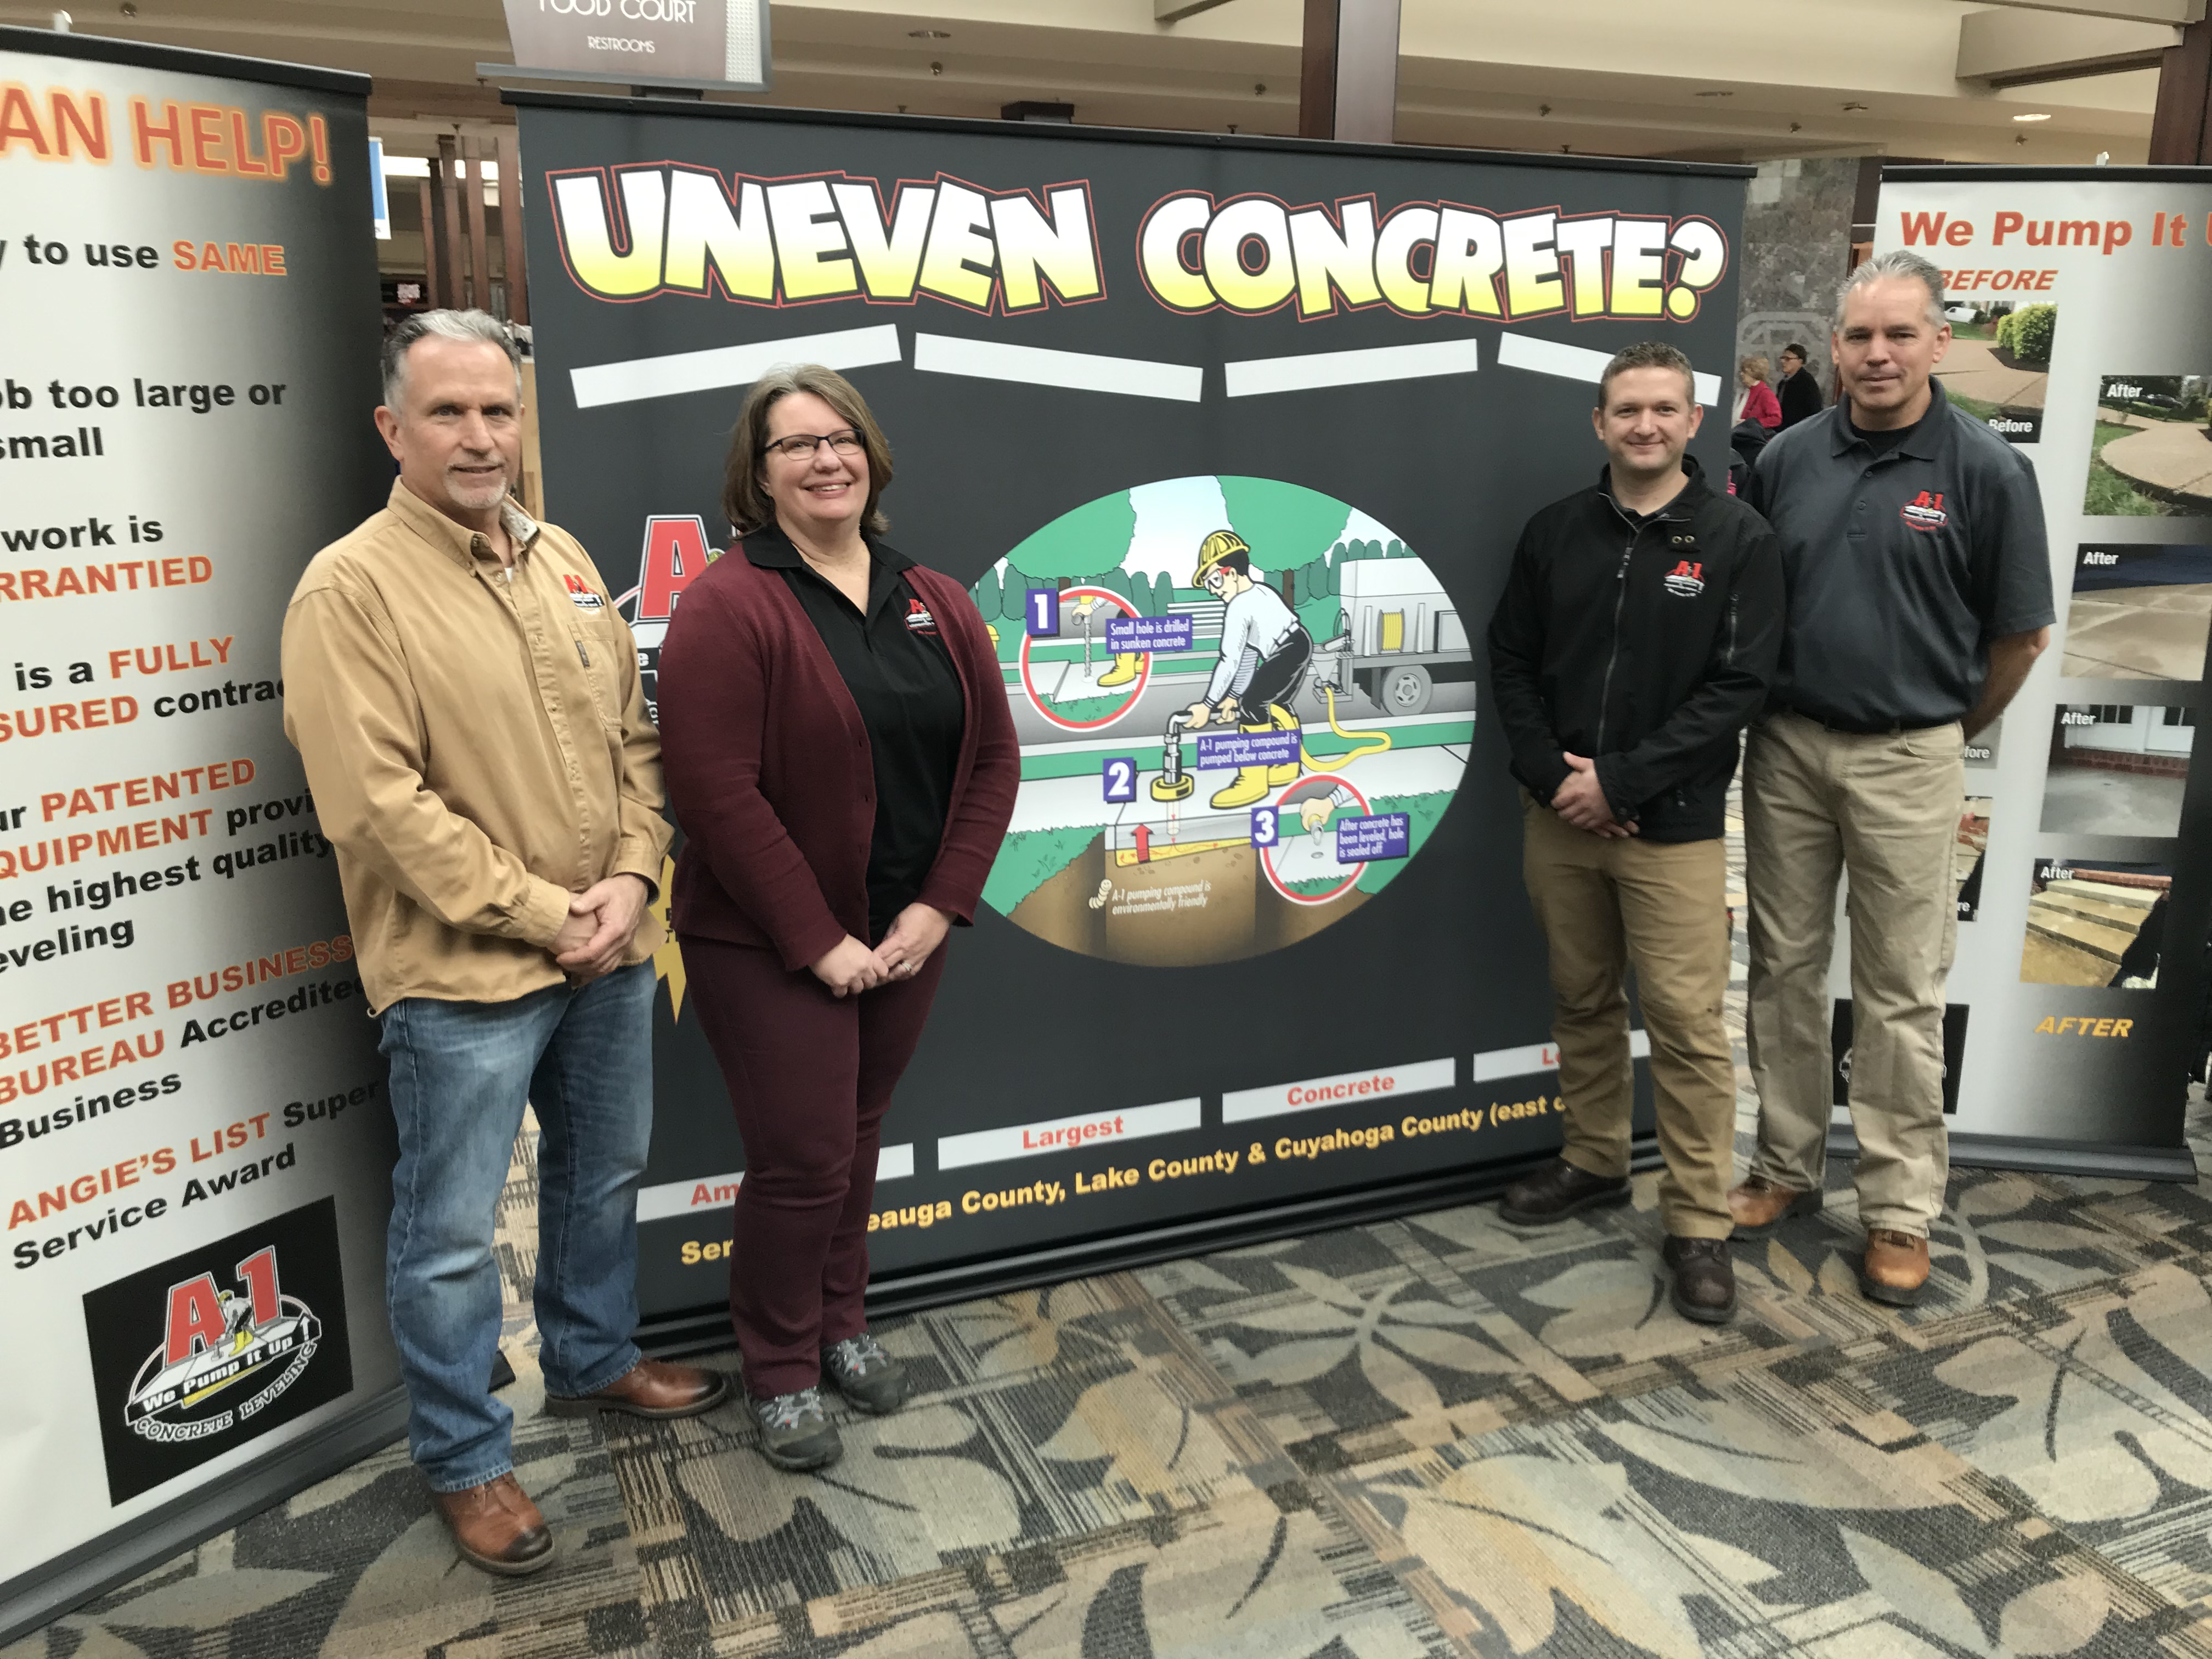 The A-1 Concrete Leveling - East Team